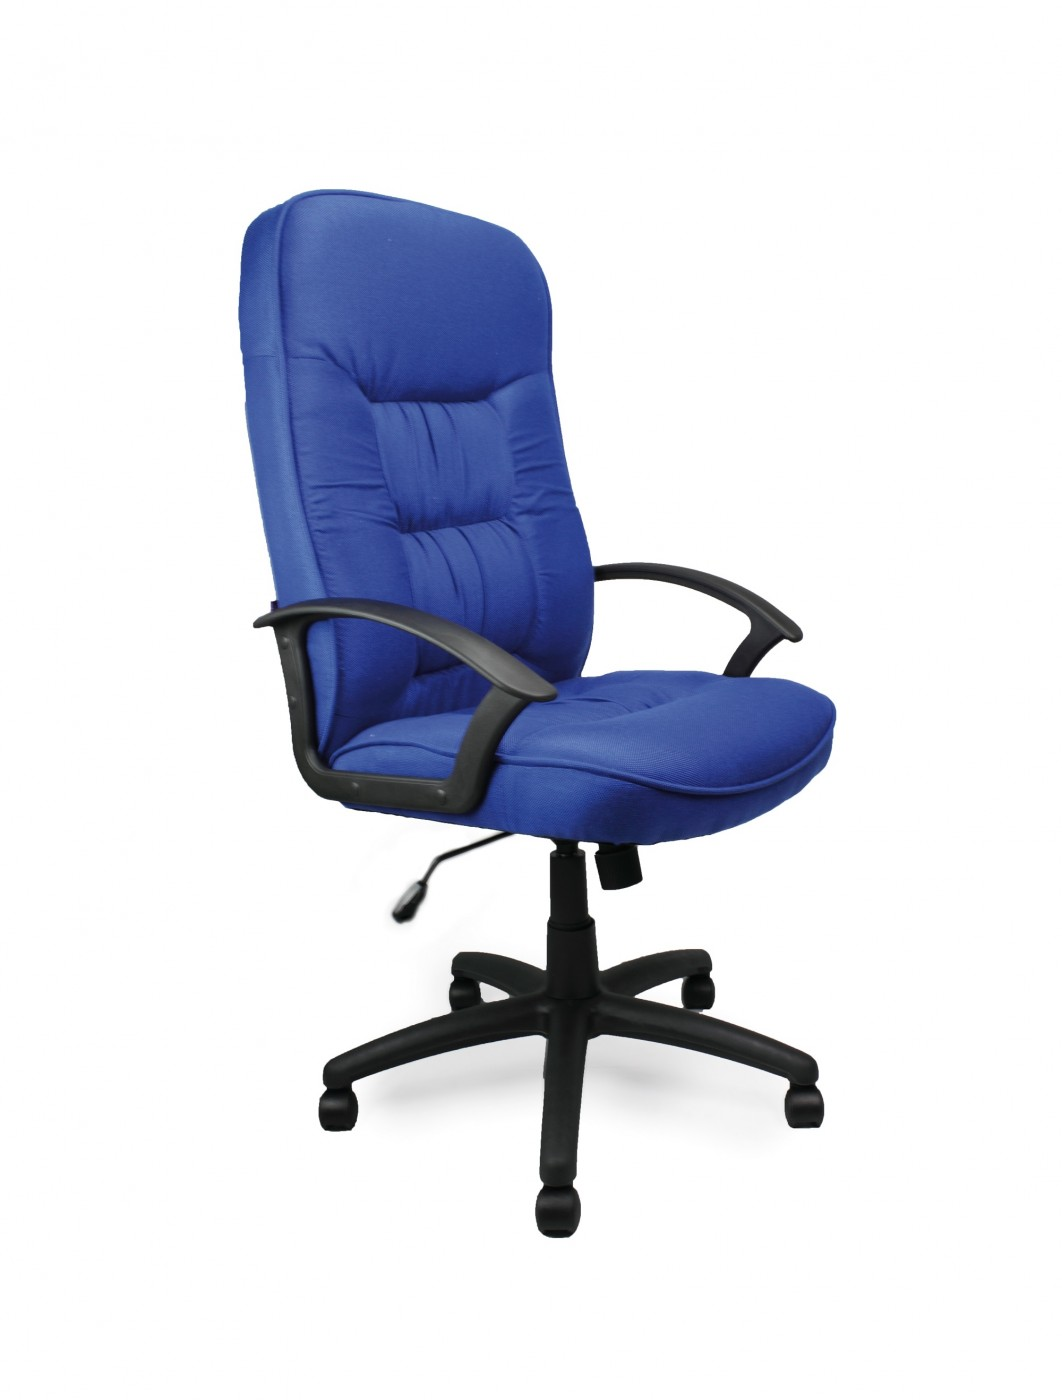 high chairs uk inexpensive ergonomic chair coniston fabric back executive office 6062atgf